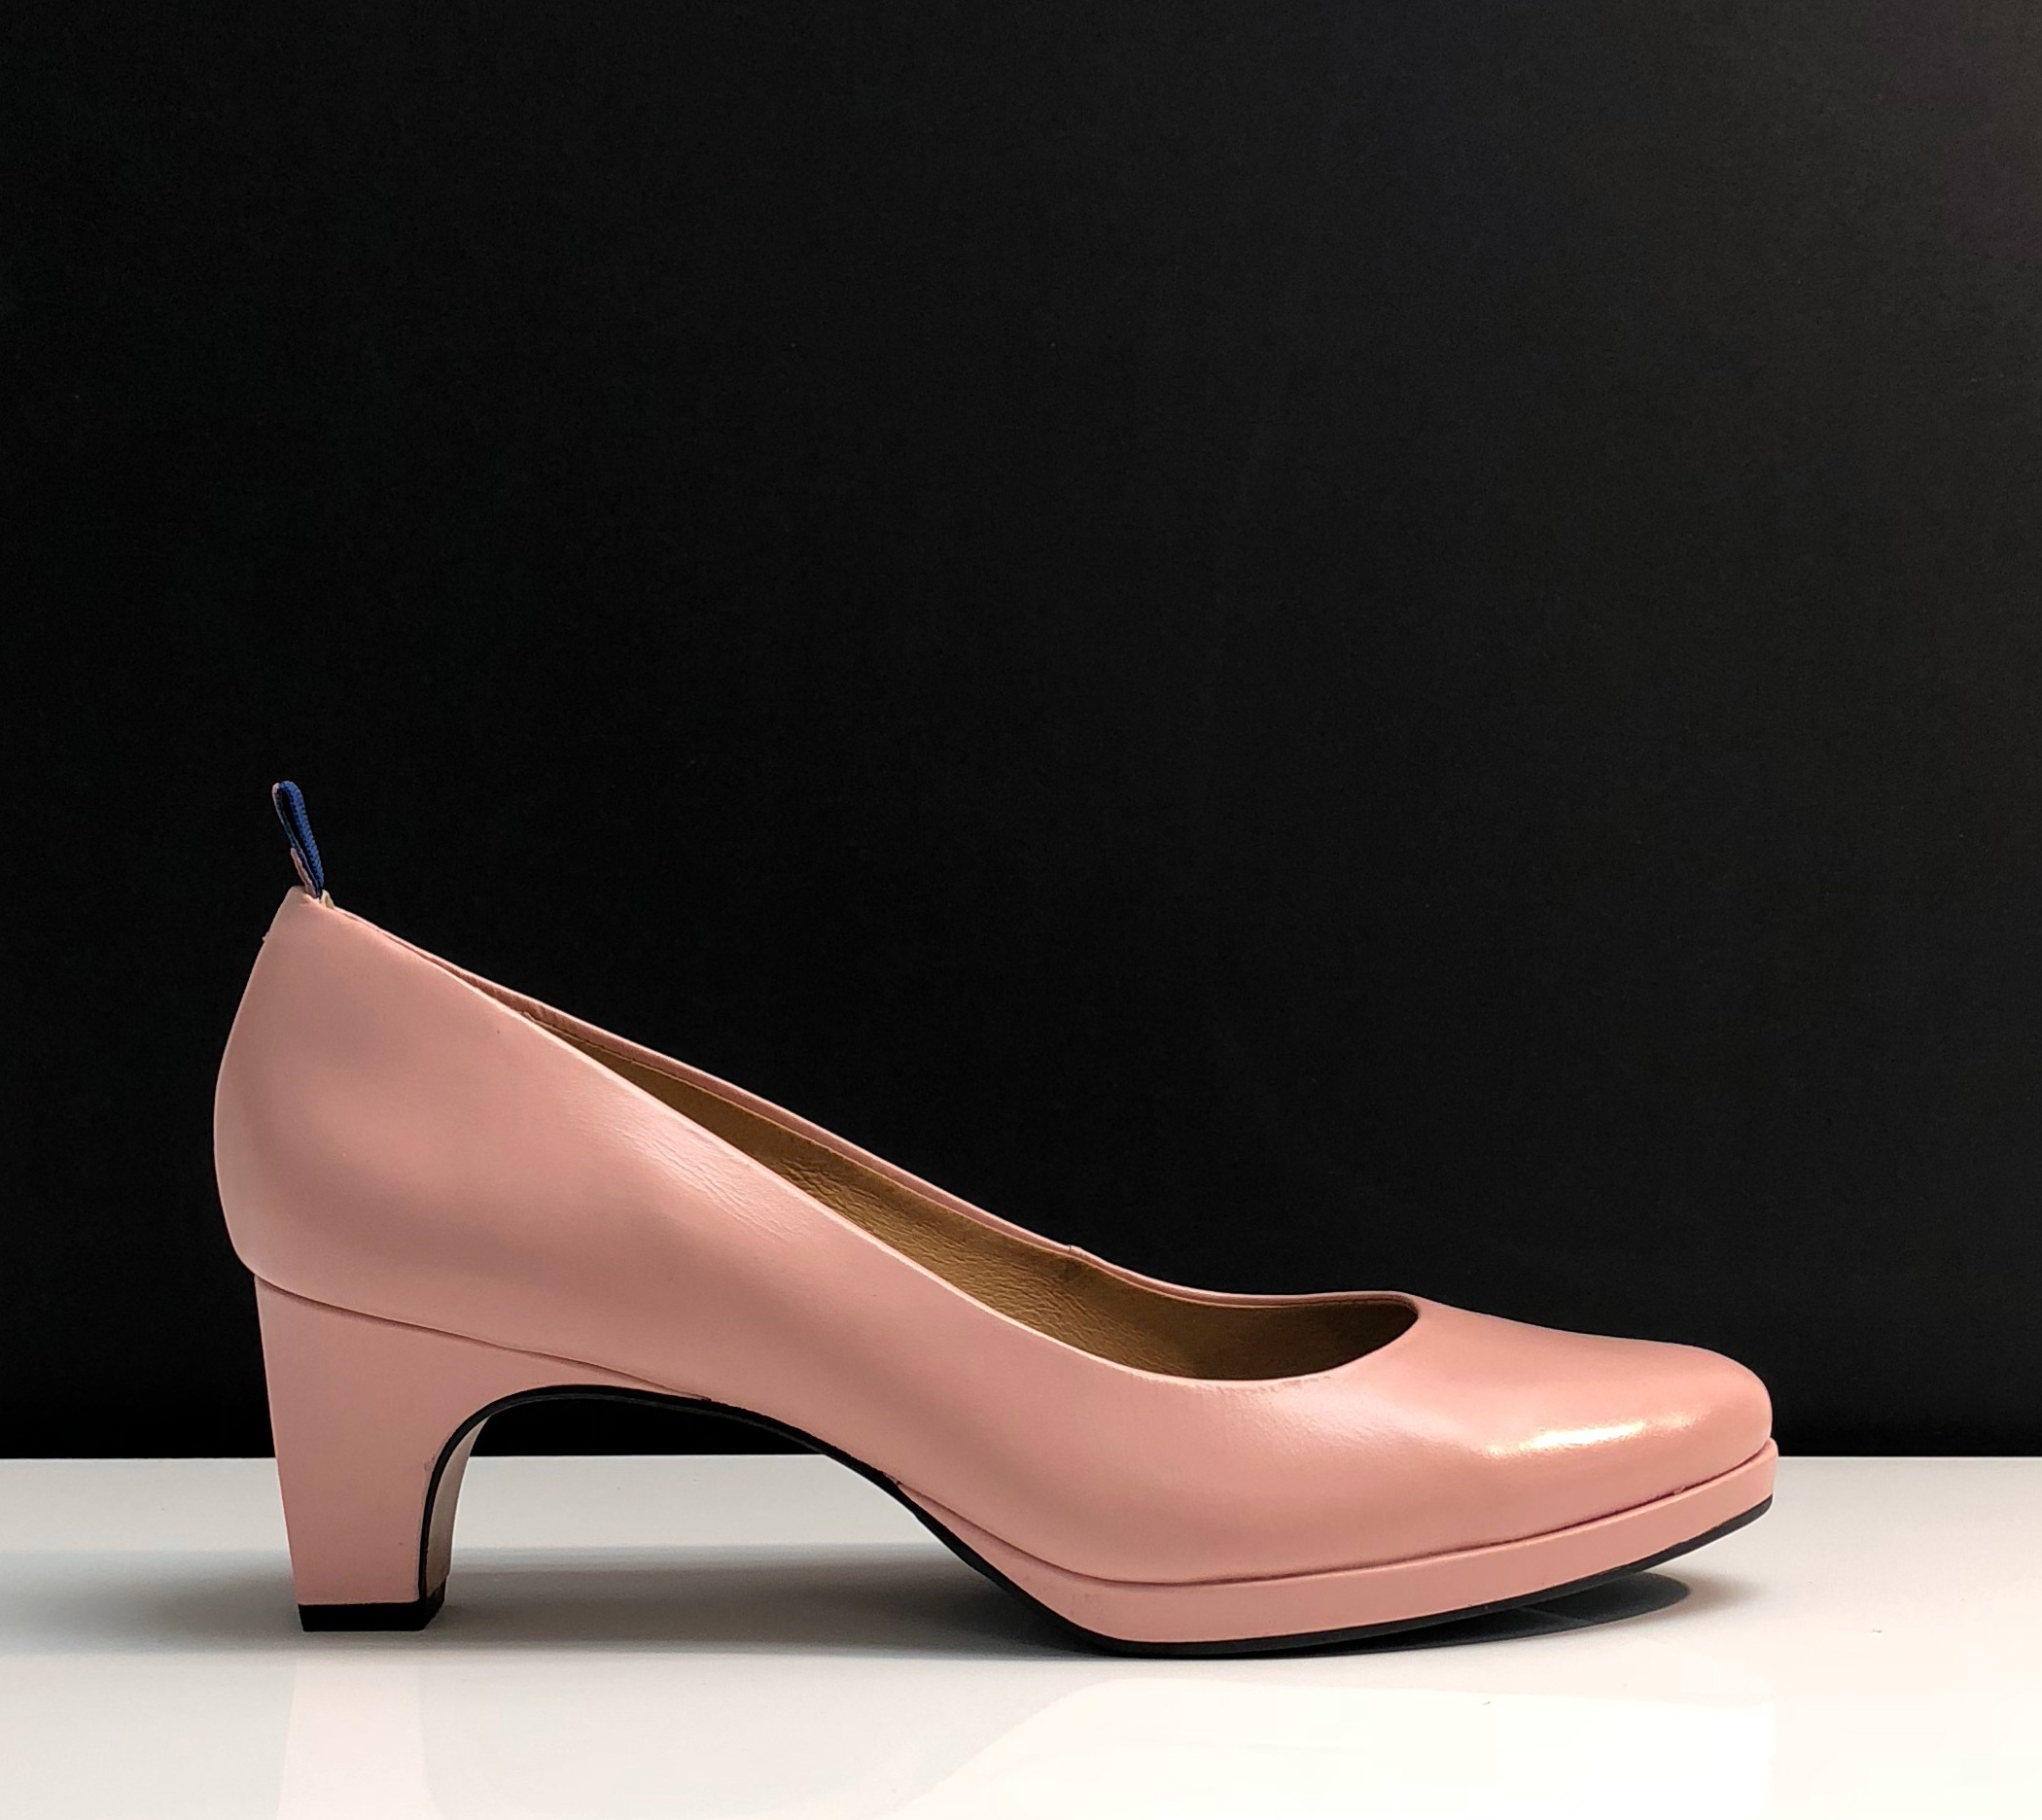 YOUR LOVE [AKA YOU] MAY NOT HAVE WORN HEELS IN A LONG TIME AND WOULD BE MORE COMFORTABLE STARTING IN SOME SNEAKER PUMPS. AND ROSY PINK IS THE PERFECT COLOUR TO SAY I LOVE YOU. DOES SHE HATE PINK? NO NEED TO WORRY - YOU CAN GO WITH BLACK, ROYAL BLUE, BEACH SAND, CARAMELO, E OR SUNSHINE YELLOW.